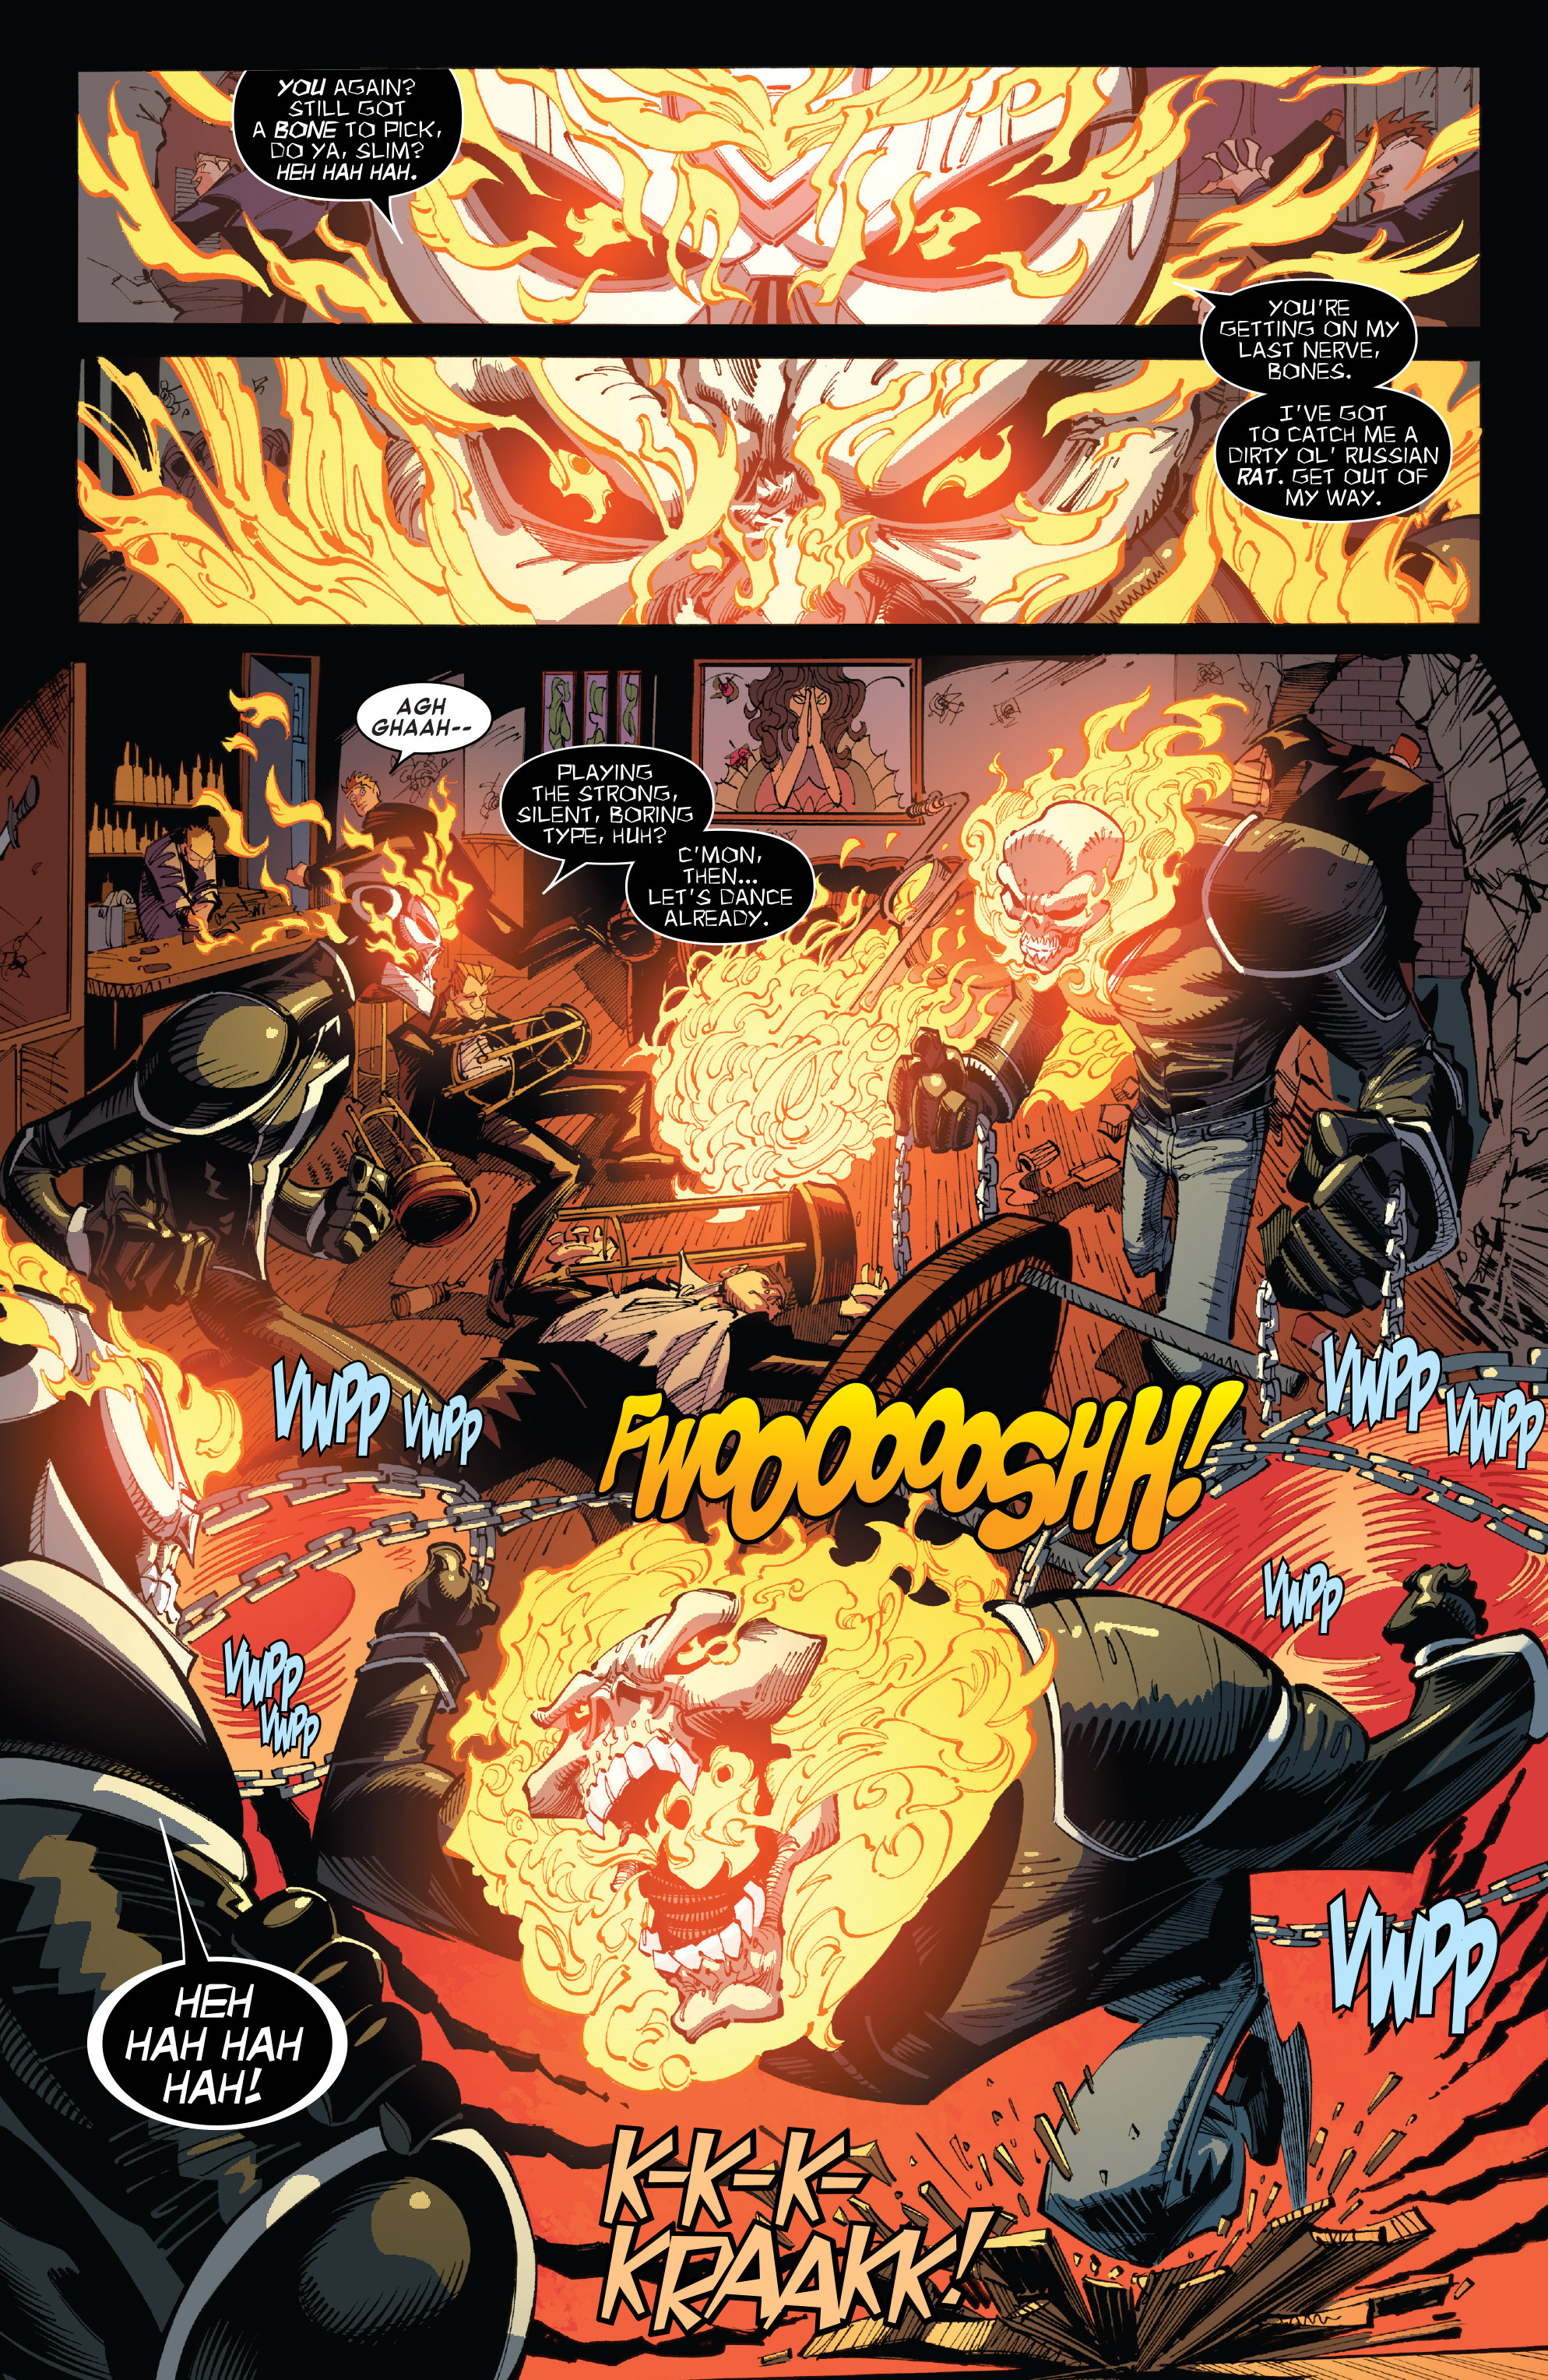 Read online All-New Ghost Rider comic -  Issue #9 - 10